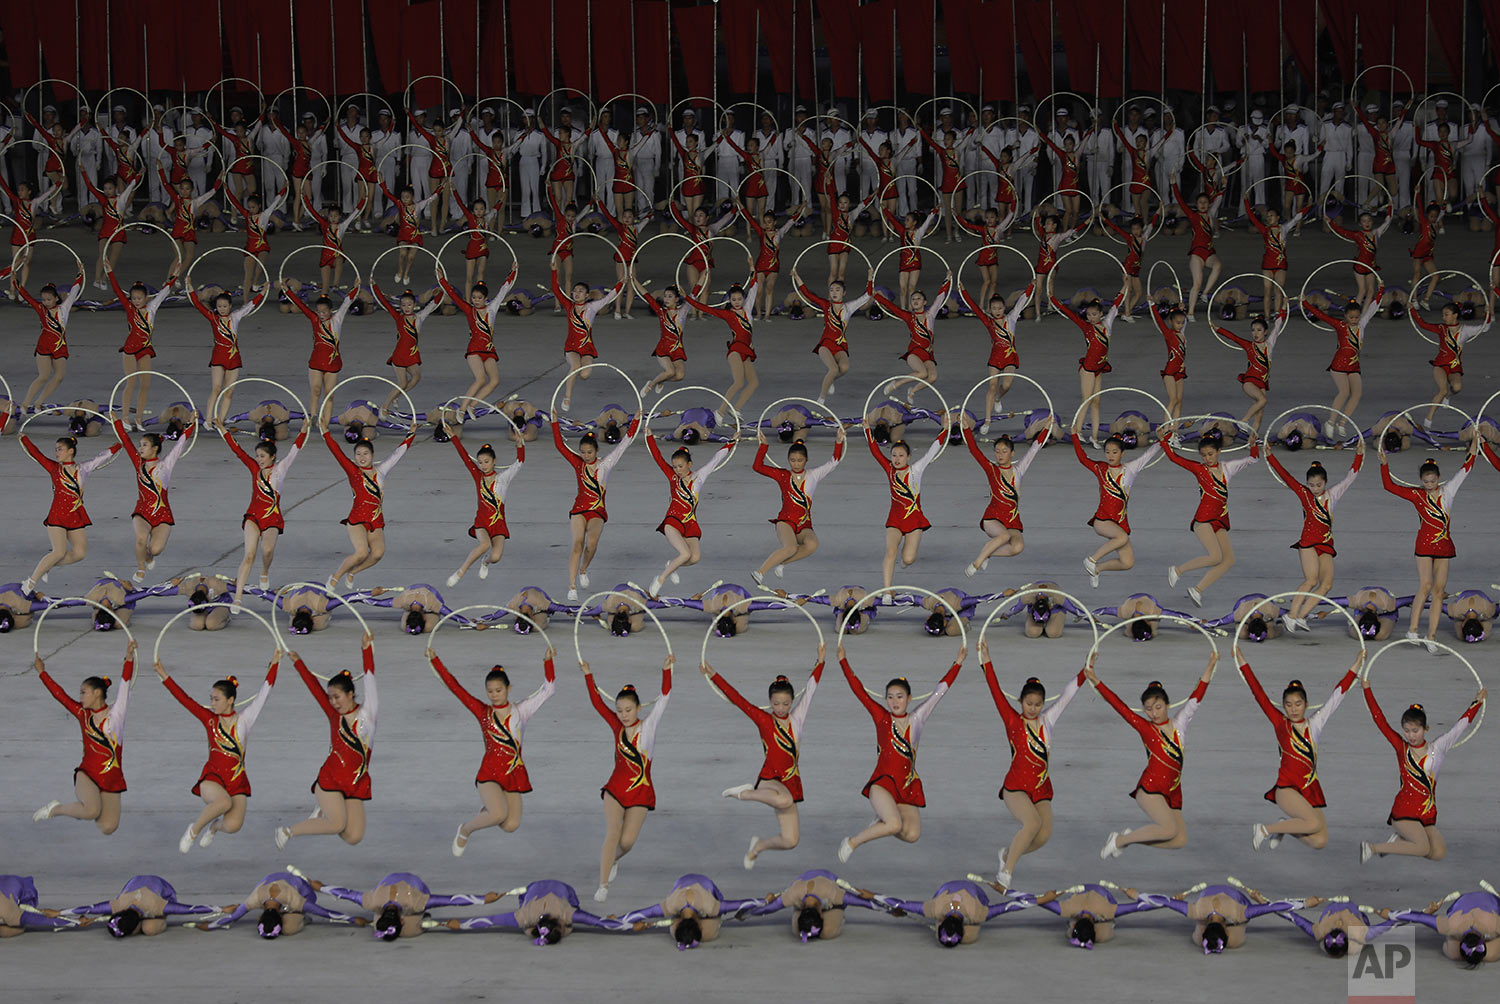 """North Koreans perform during a mass game performance of """"The Land of the People"""" at the May Day Stadium in Pyongyang, North Korea, Tuesday, July 16, 2019. (AP Photo/Vincent Yu)"""